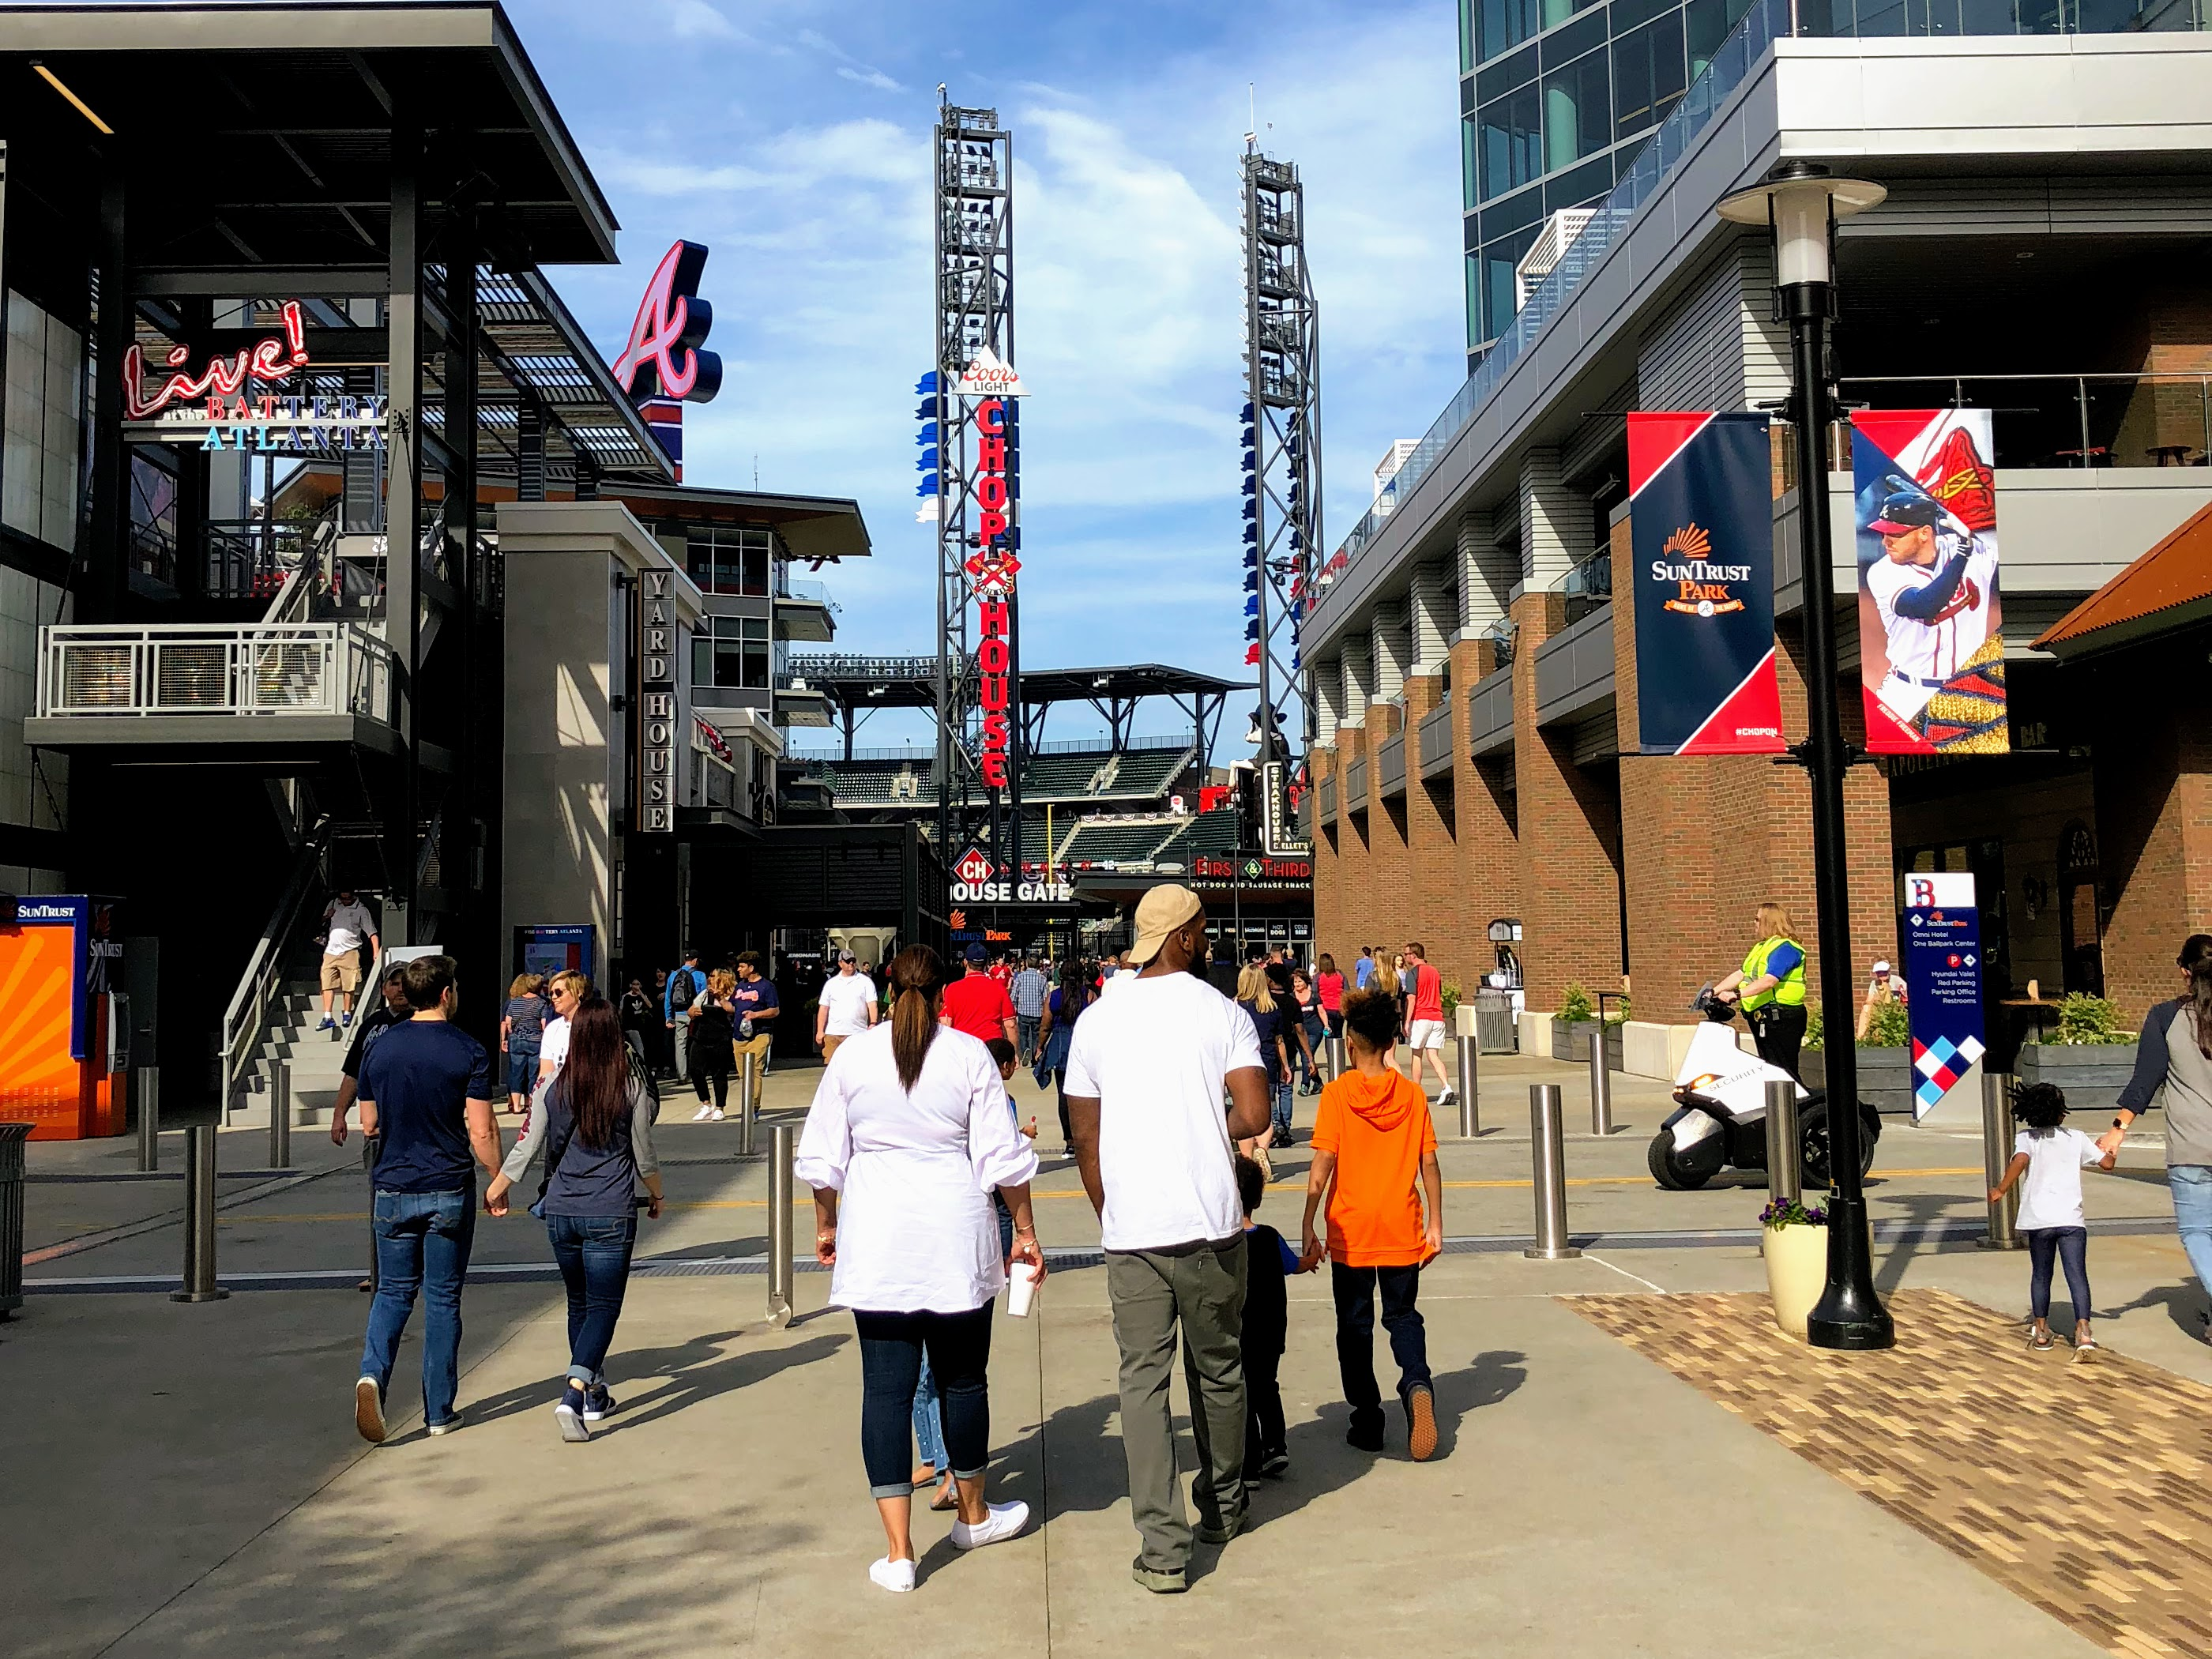 SunTrust Park and The Battery Atlanta are just a short drive from the city. (photo credit: @sdenisebelle)